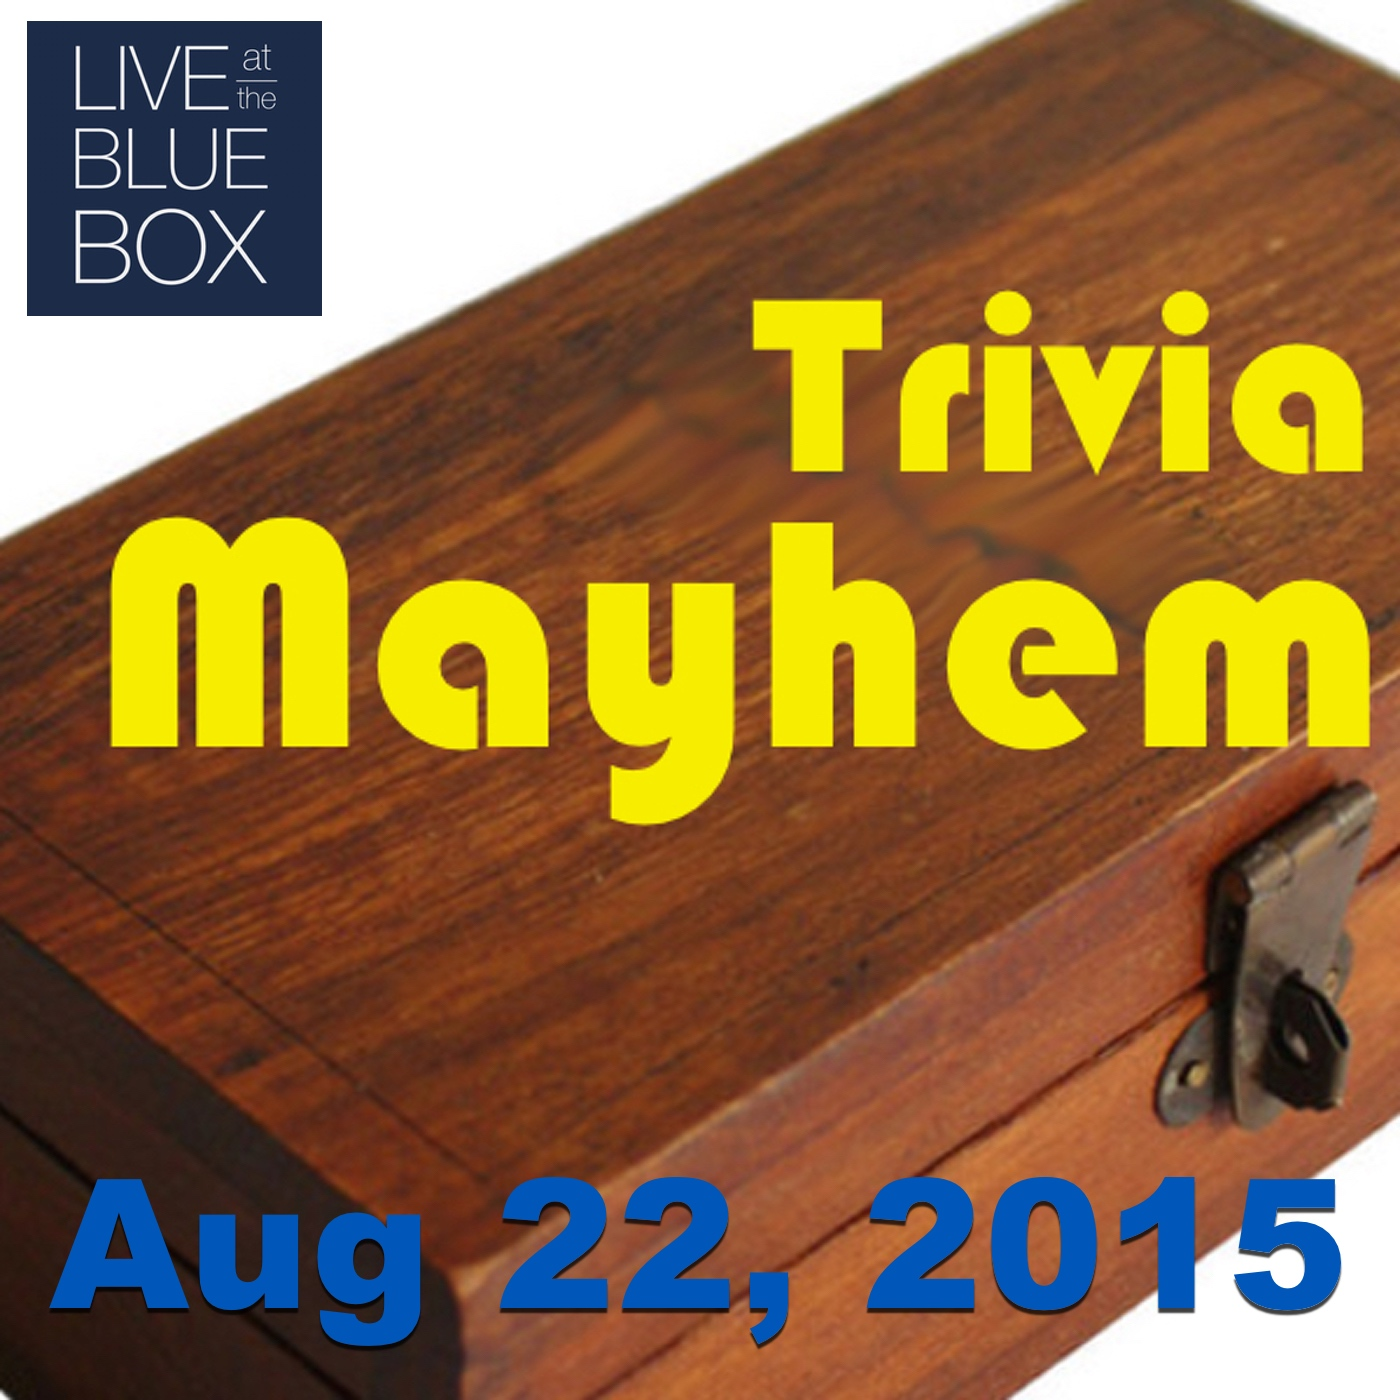 Trivia Mayhem 8-22-15 Live at the Blue Box